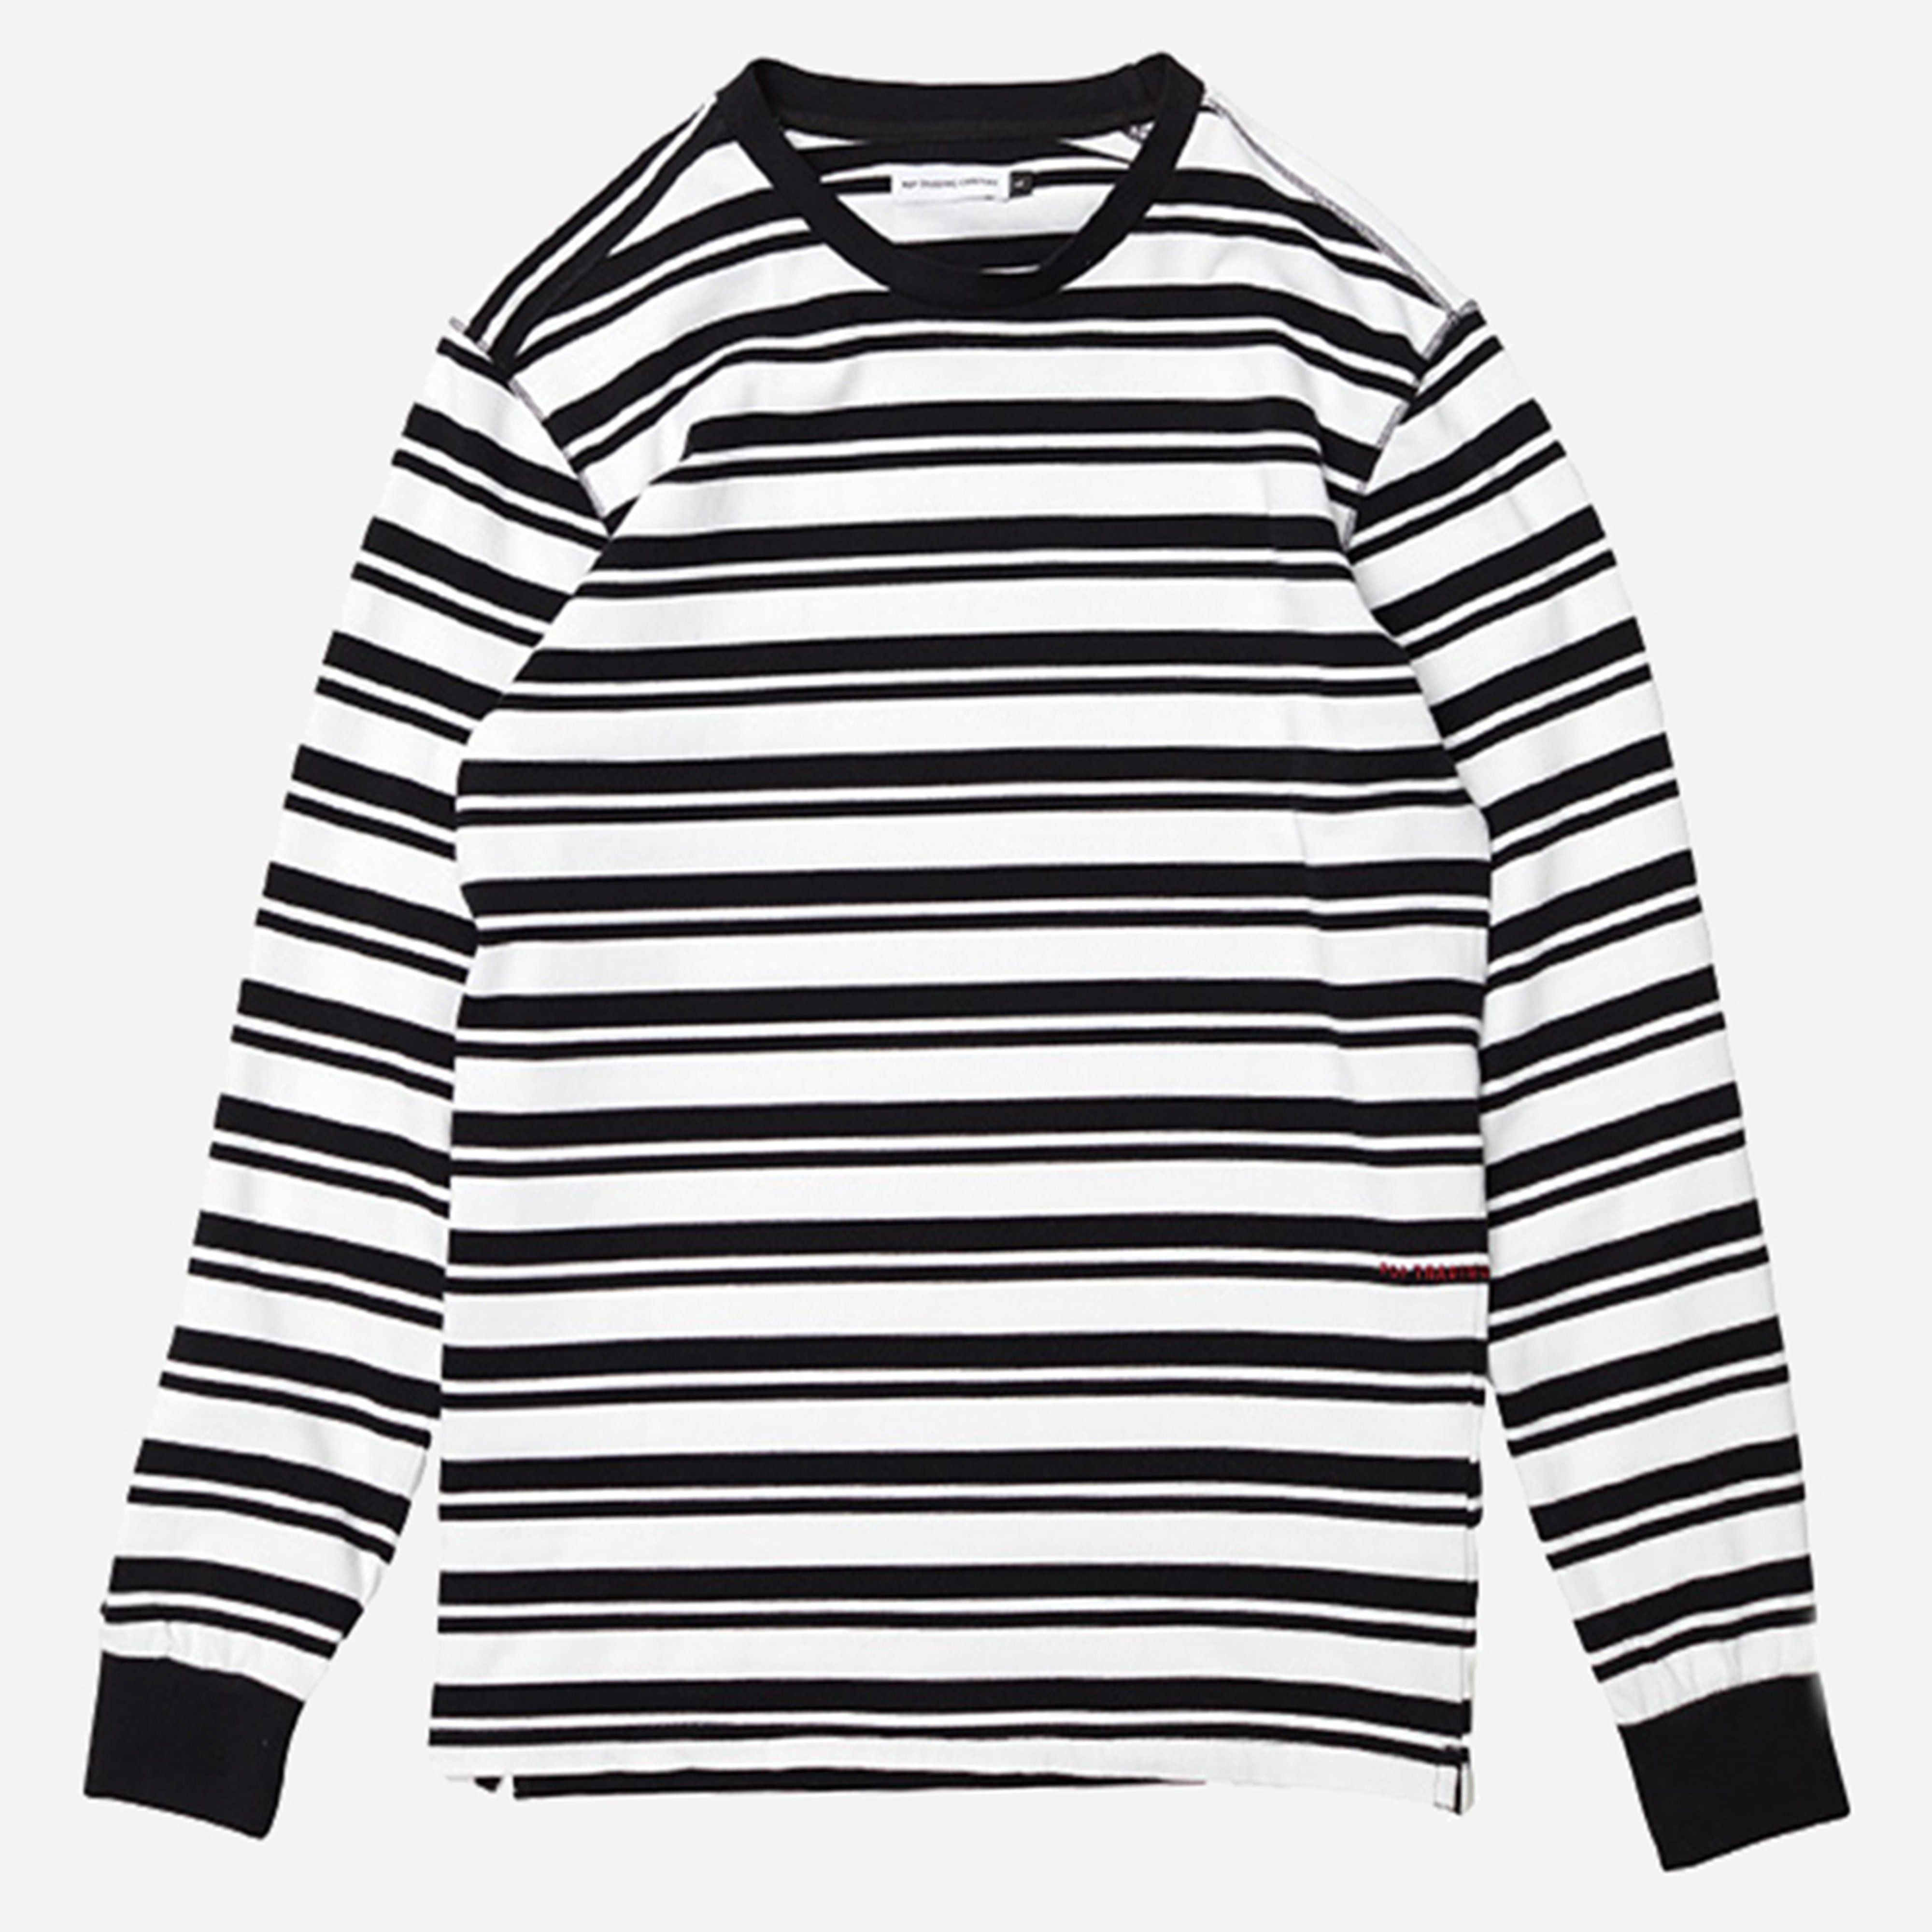 Pop Trading Company Striped Longsleeve T-Shirt